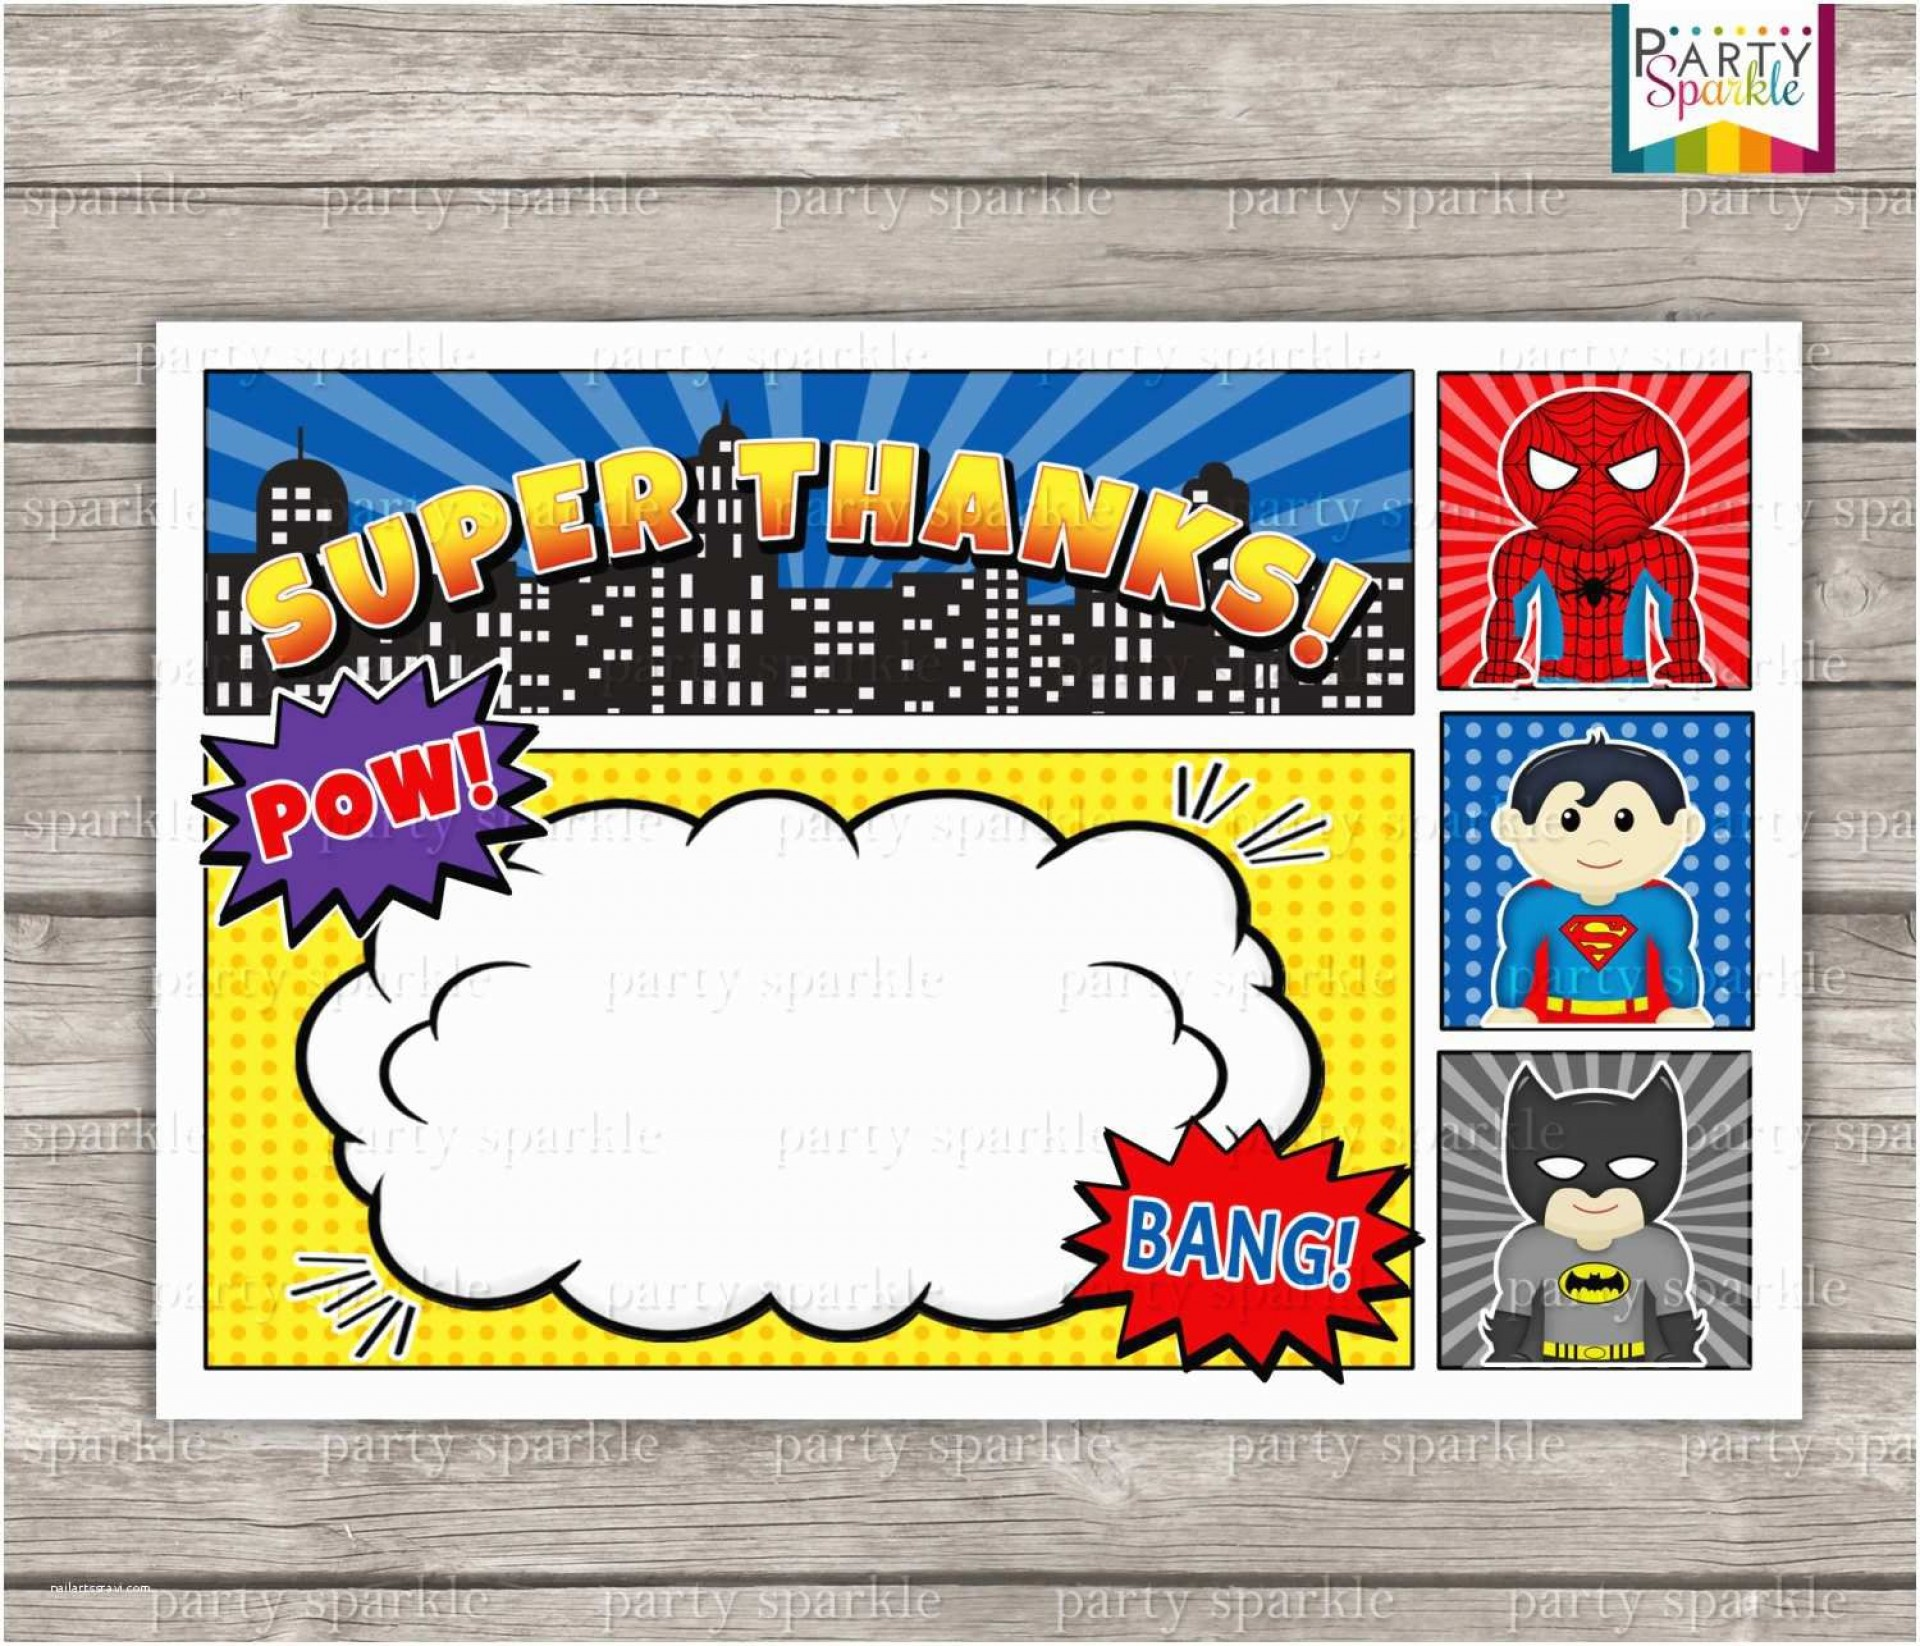 006 Remarkable Superhero Invitation Template Free Picture  Newspaper Party Birthday Invite1920